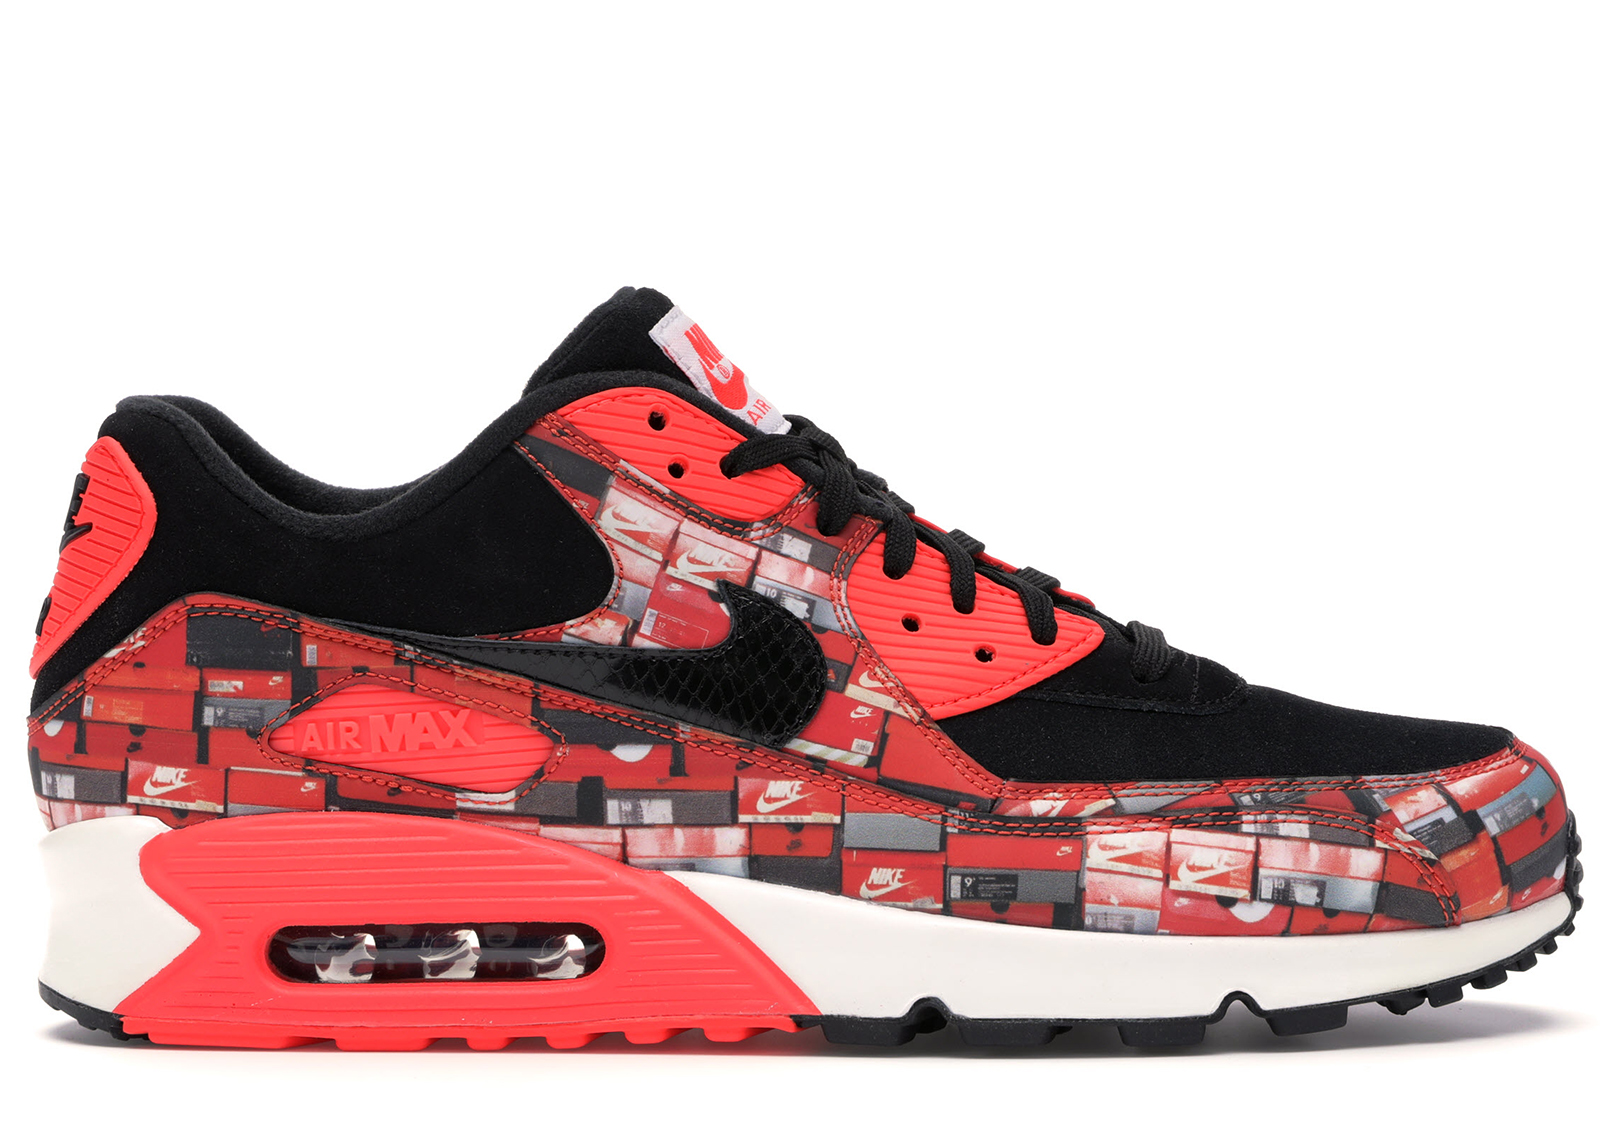 Air Max 90 Atmos We Love Nike (Bright Crimson)